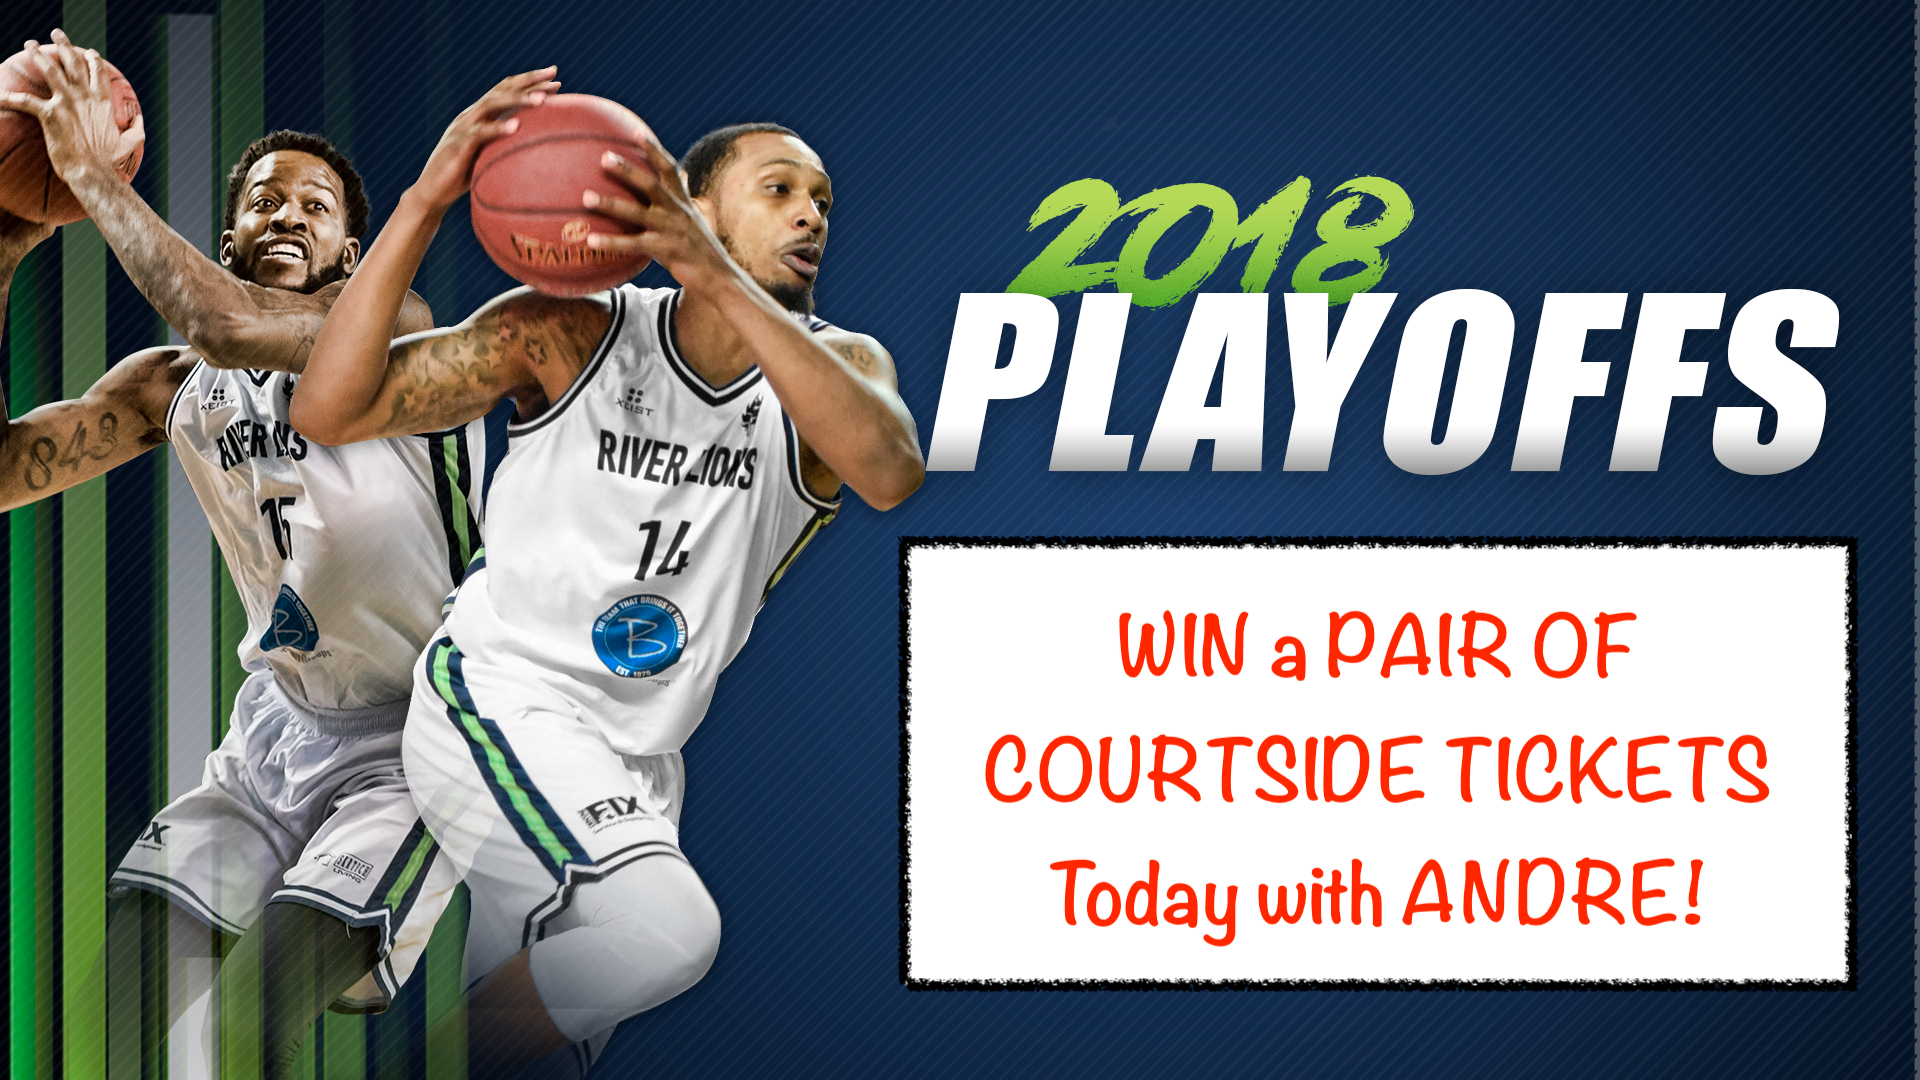 Head to the Niagara Riverlions Playoff Game!